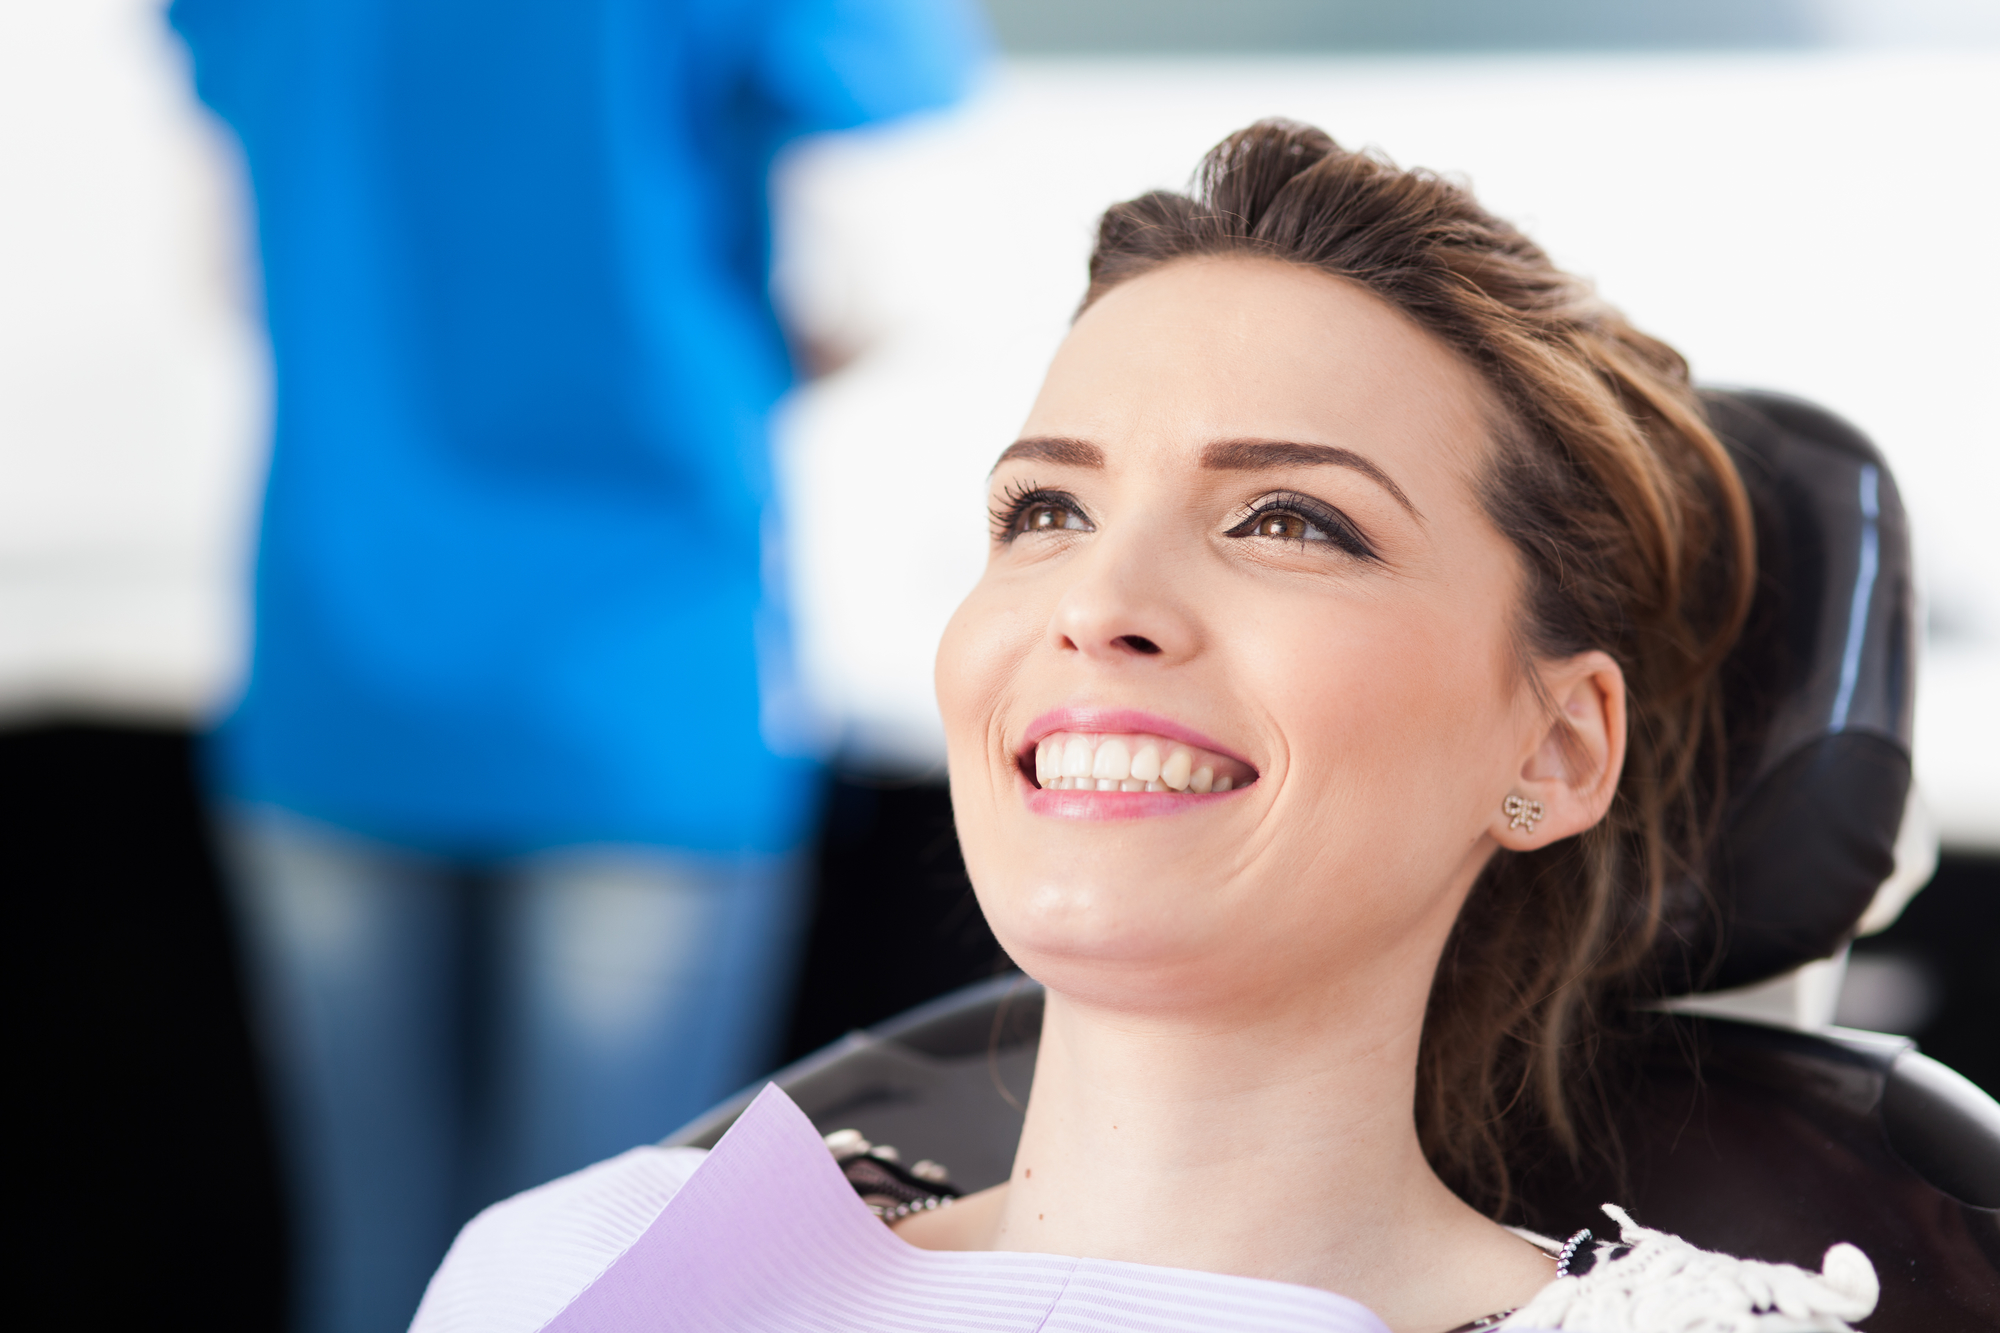 Teeth Whitening Fort Lauderdale | Professional Whitening Treatments Frequently Asked Questions